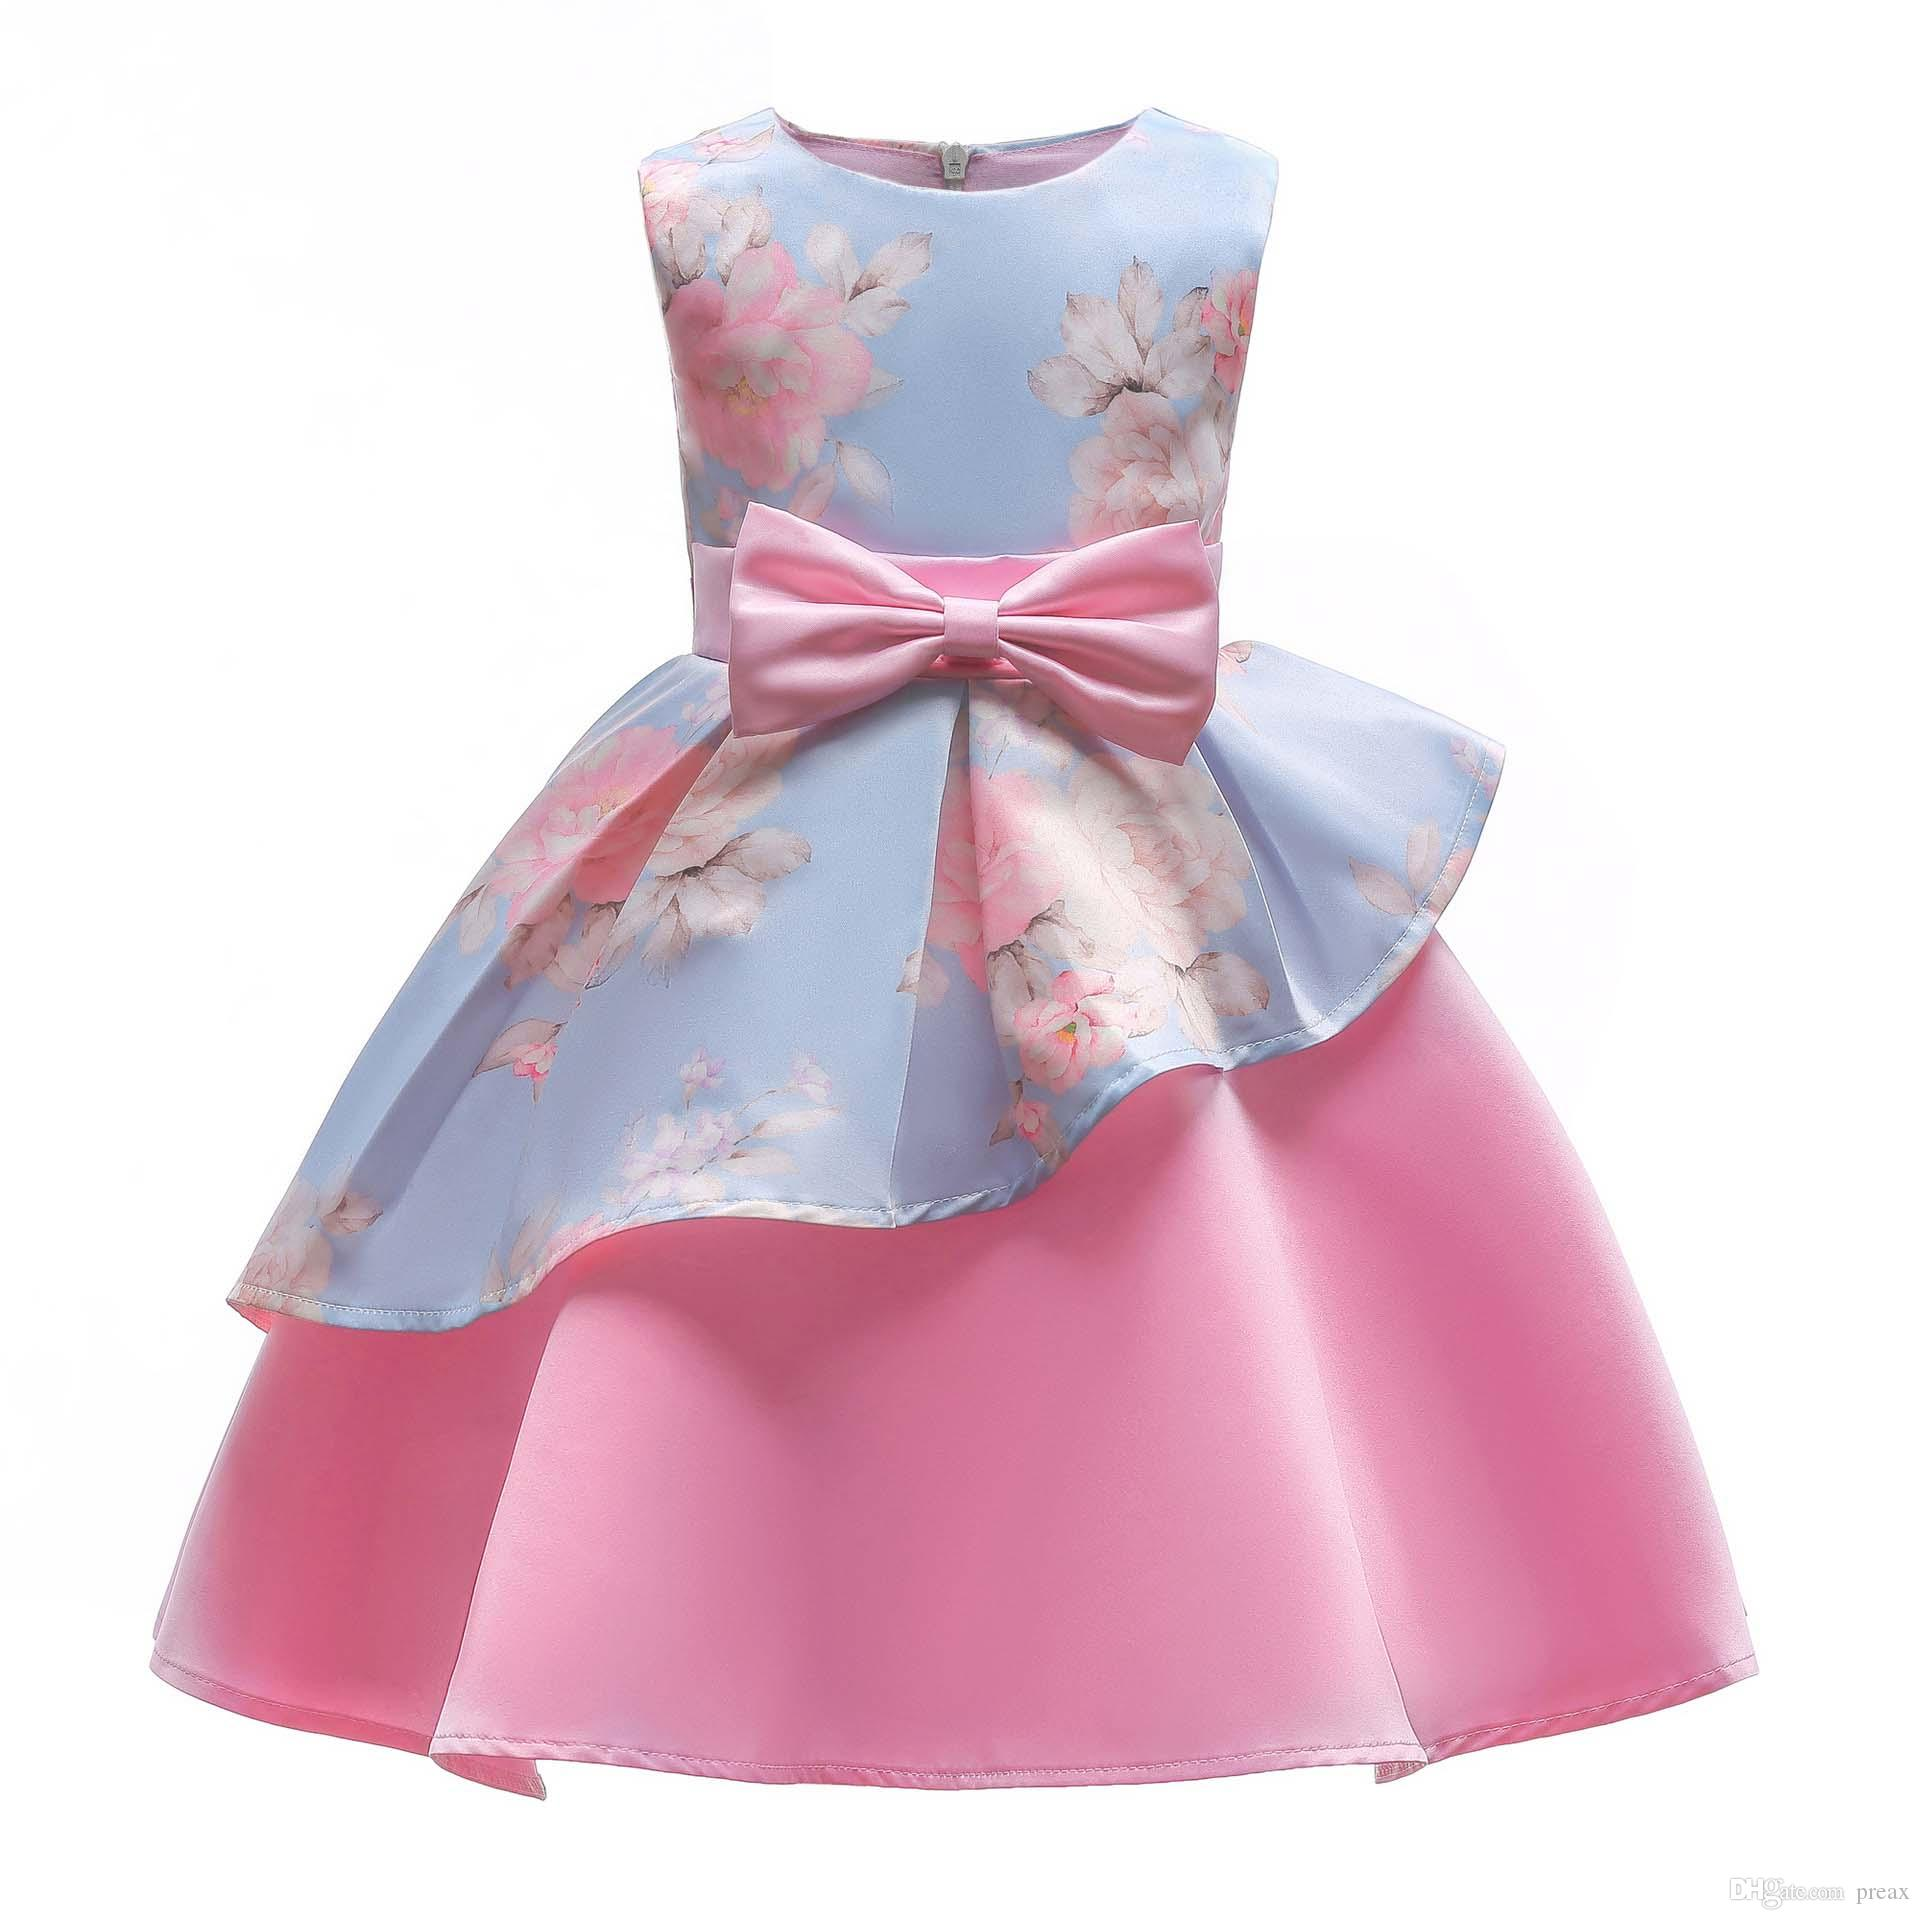 2020 2019 Kids Ball Gown Dresses Child Teen Girls Clothes Irregularity Flower Printing Ruffled Wedding Party Princess Dress 3 8 Years From Preax 15 37 Dhgate Com